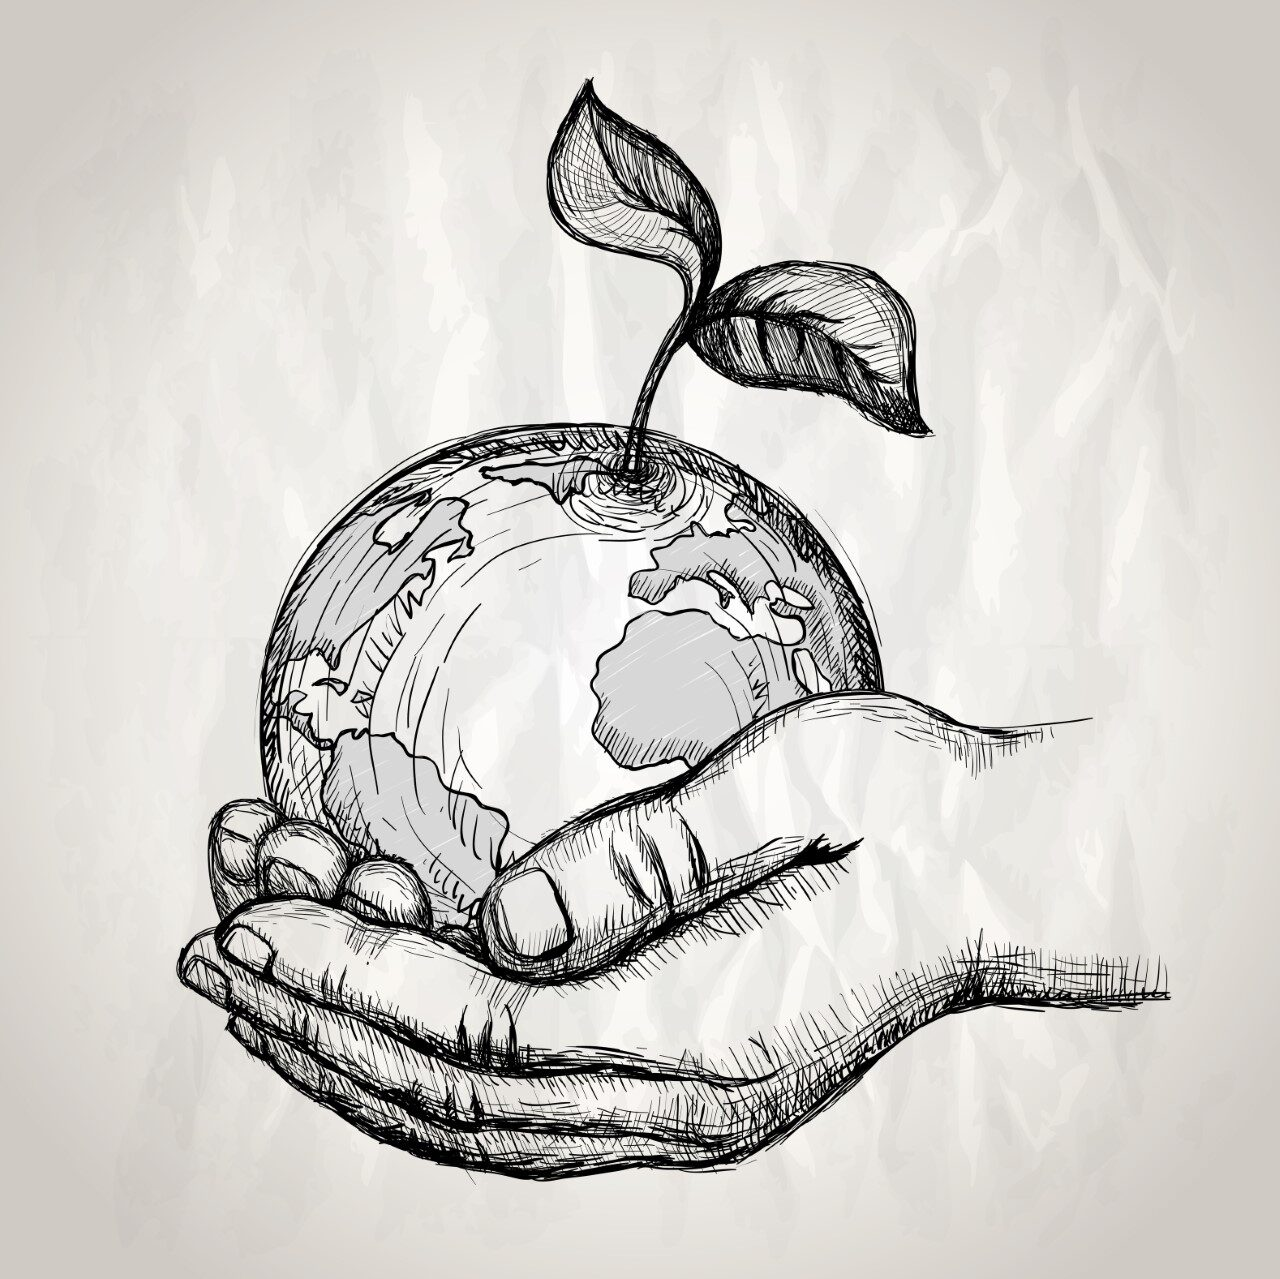 thumbnail_Human-hands-holding-earth-with-plant-sprout,-vector-hand-drawn-graphic-illustration-1171898911_3159x3157